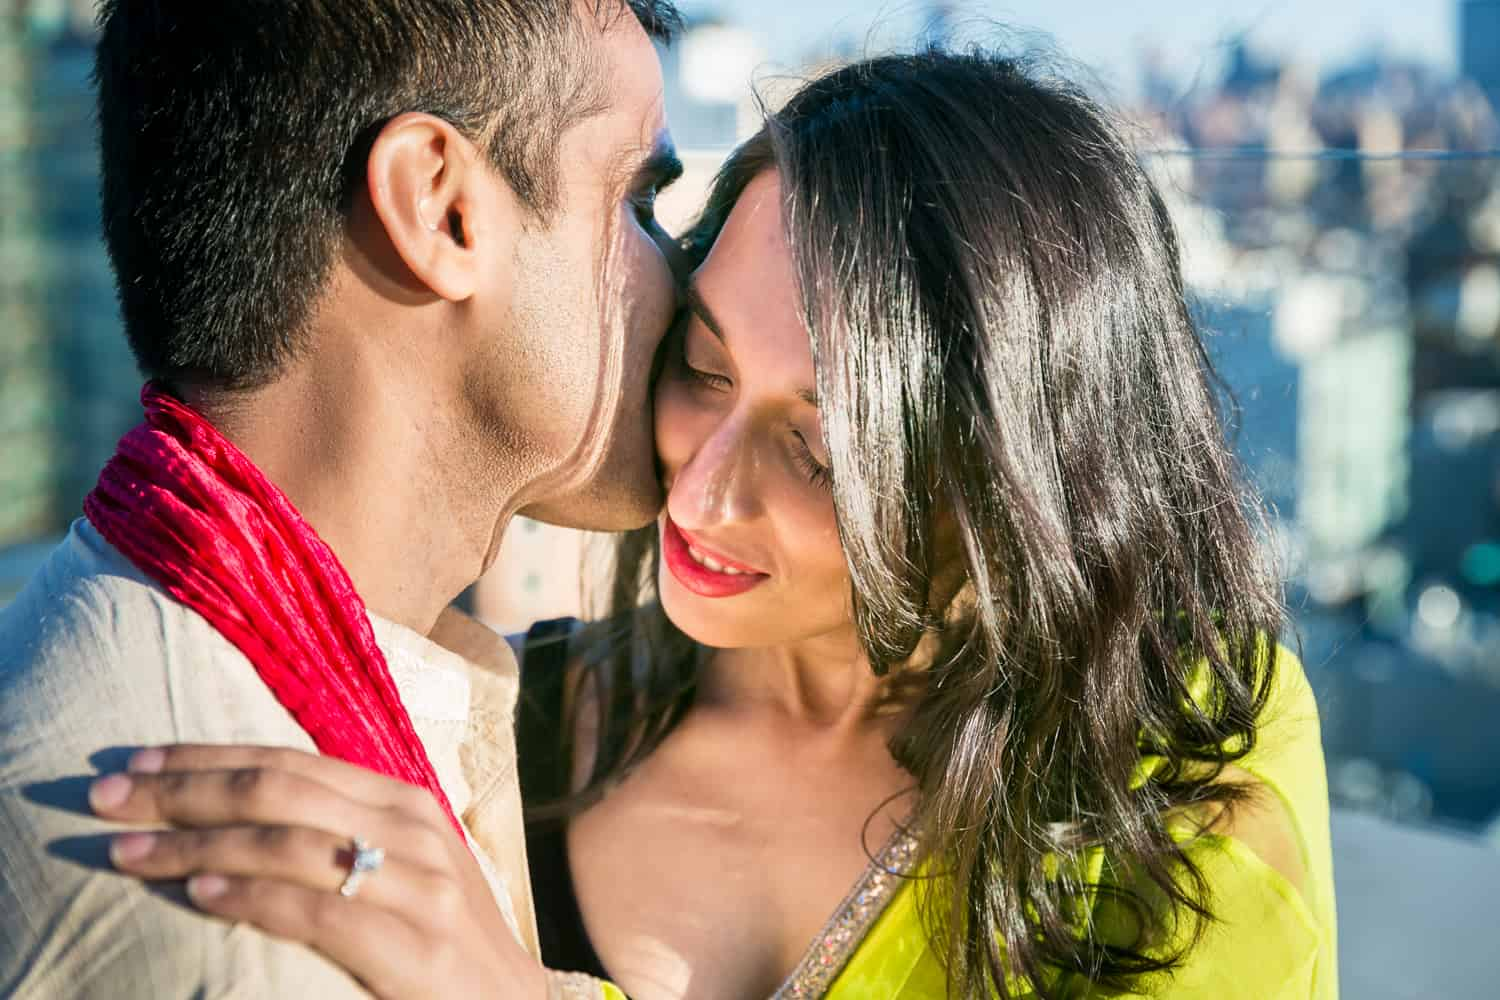 Couple wearing traditional Indian attire and man kissing woman on side of head